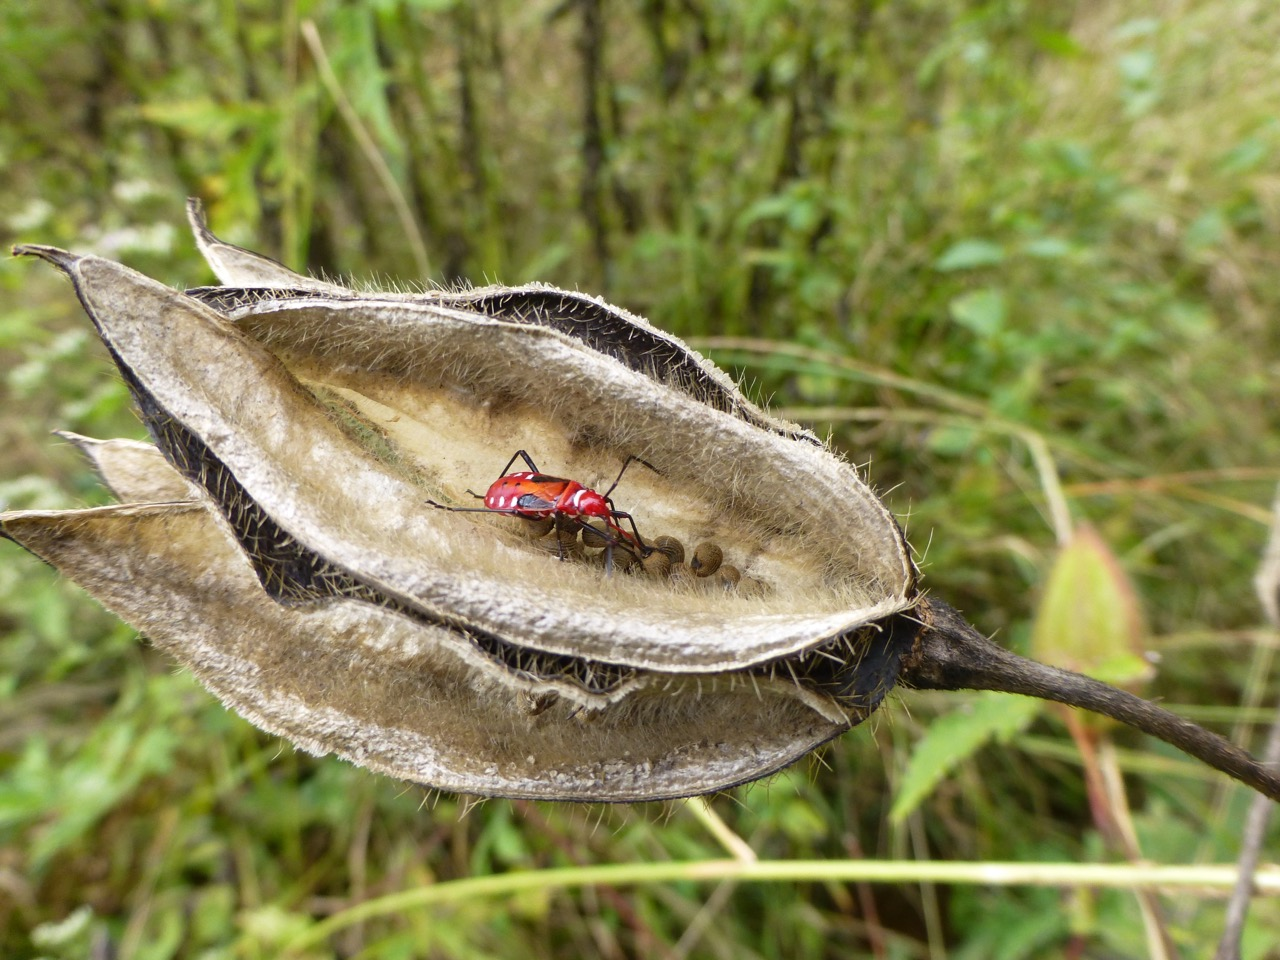 Red palm weevil, rural northern Laos. Photo by Erica Gies.